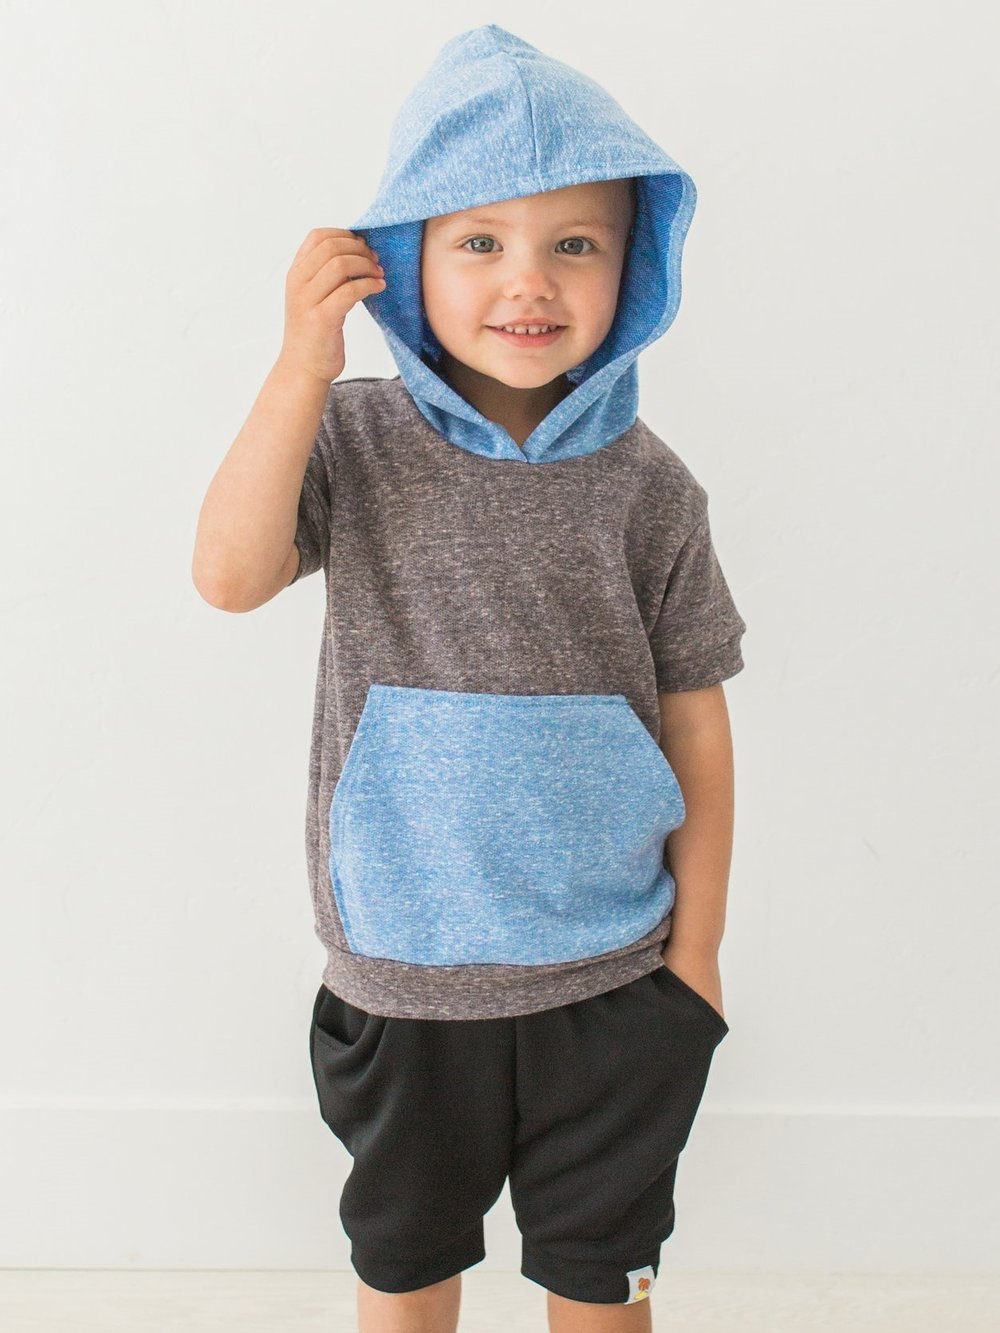 PARADISE KIDS CLOTHING-0234.jpg